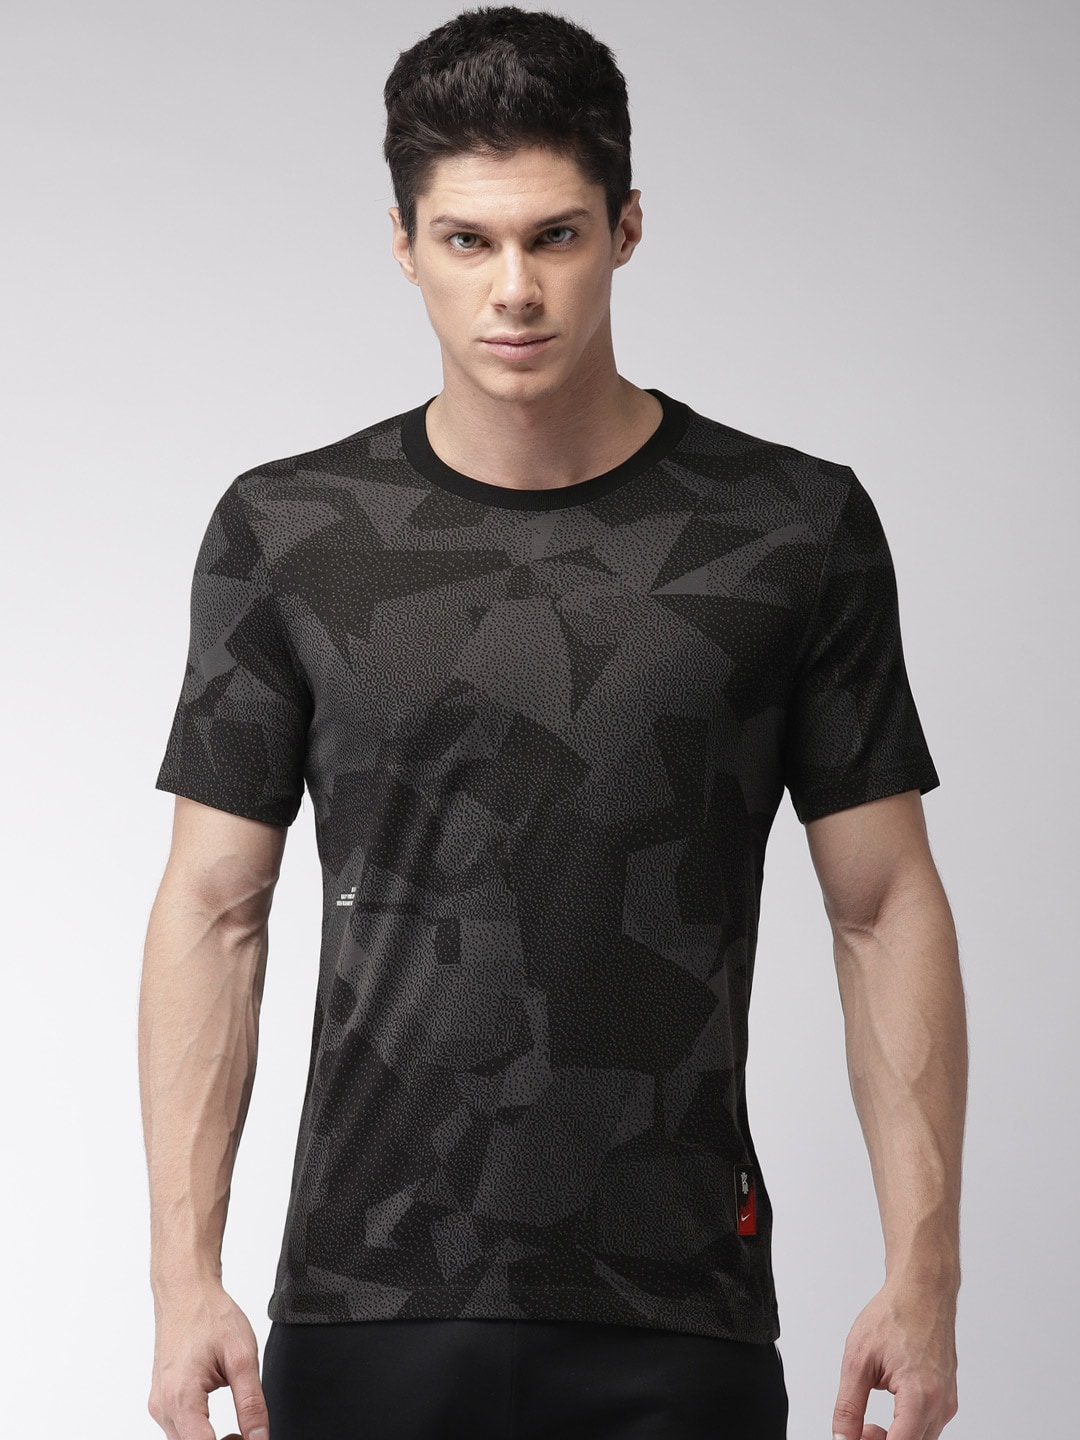 9032fc68092c Camouflage Tshirts - Buy Camouflage Tshirts online in India